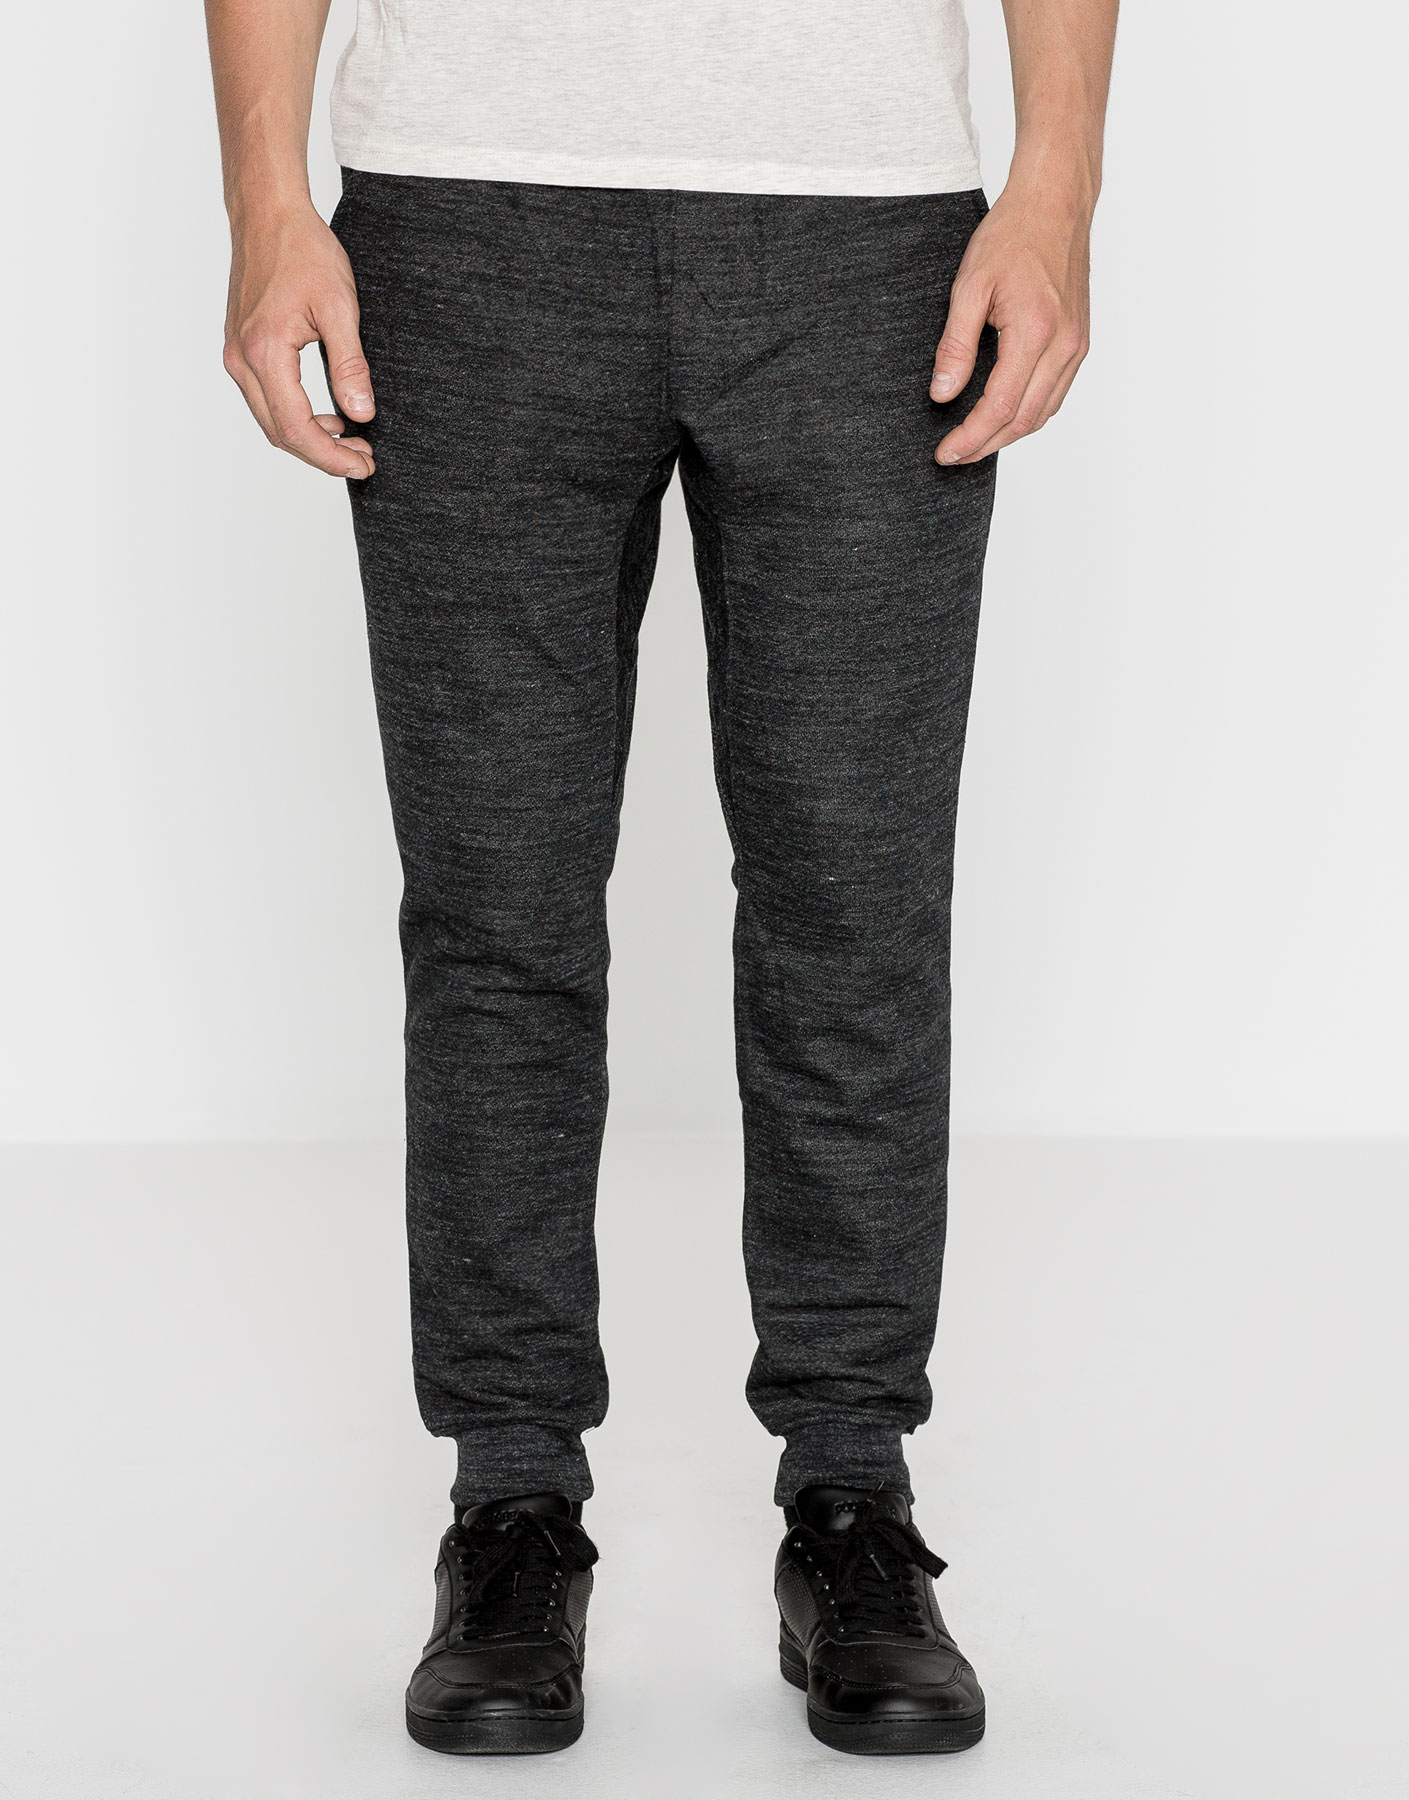 Skinny fit jogging trousers